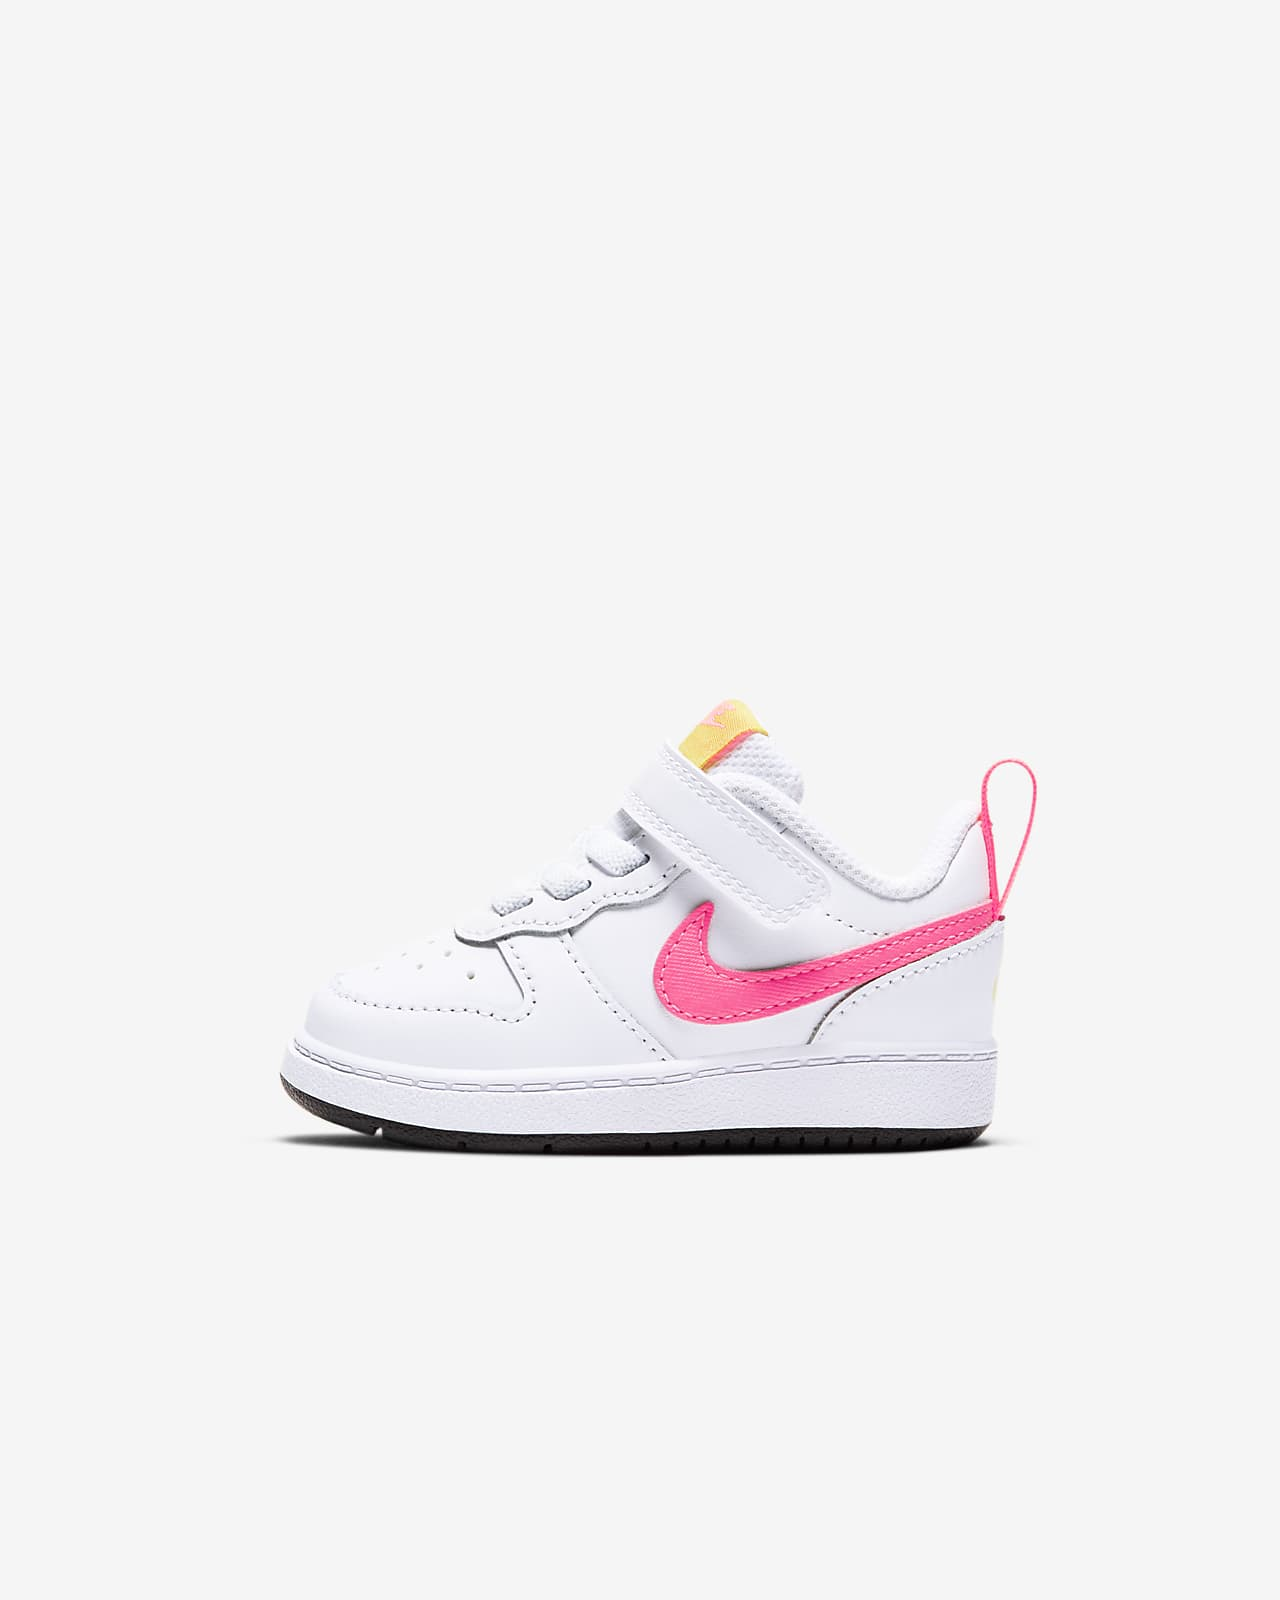 Sko Nike Court Borough Low 2 för baby/små barn